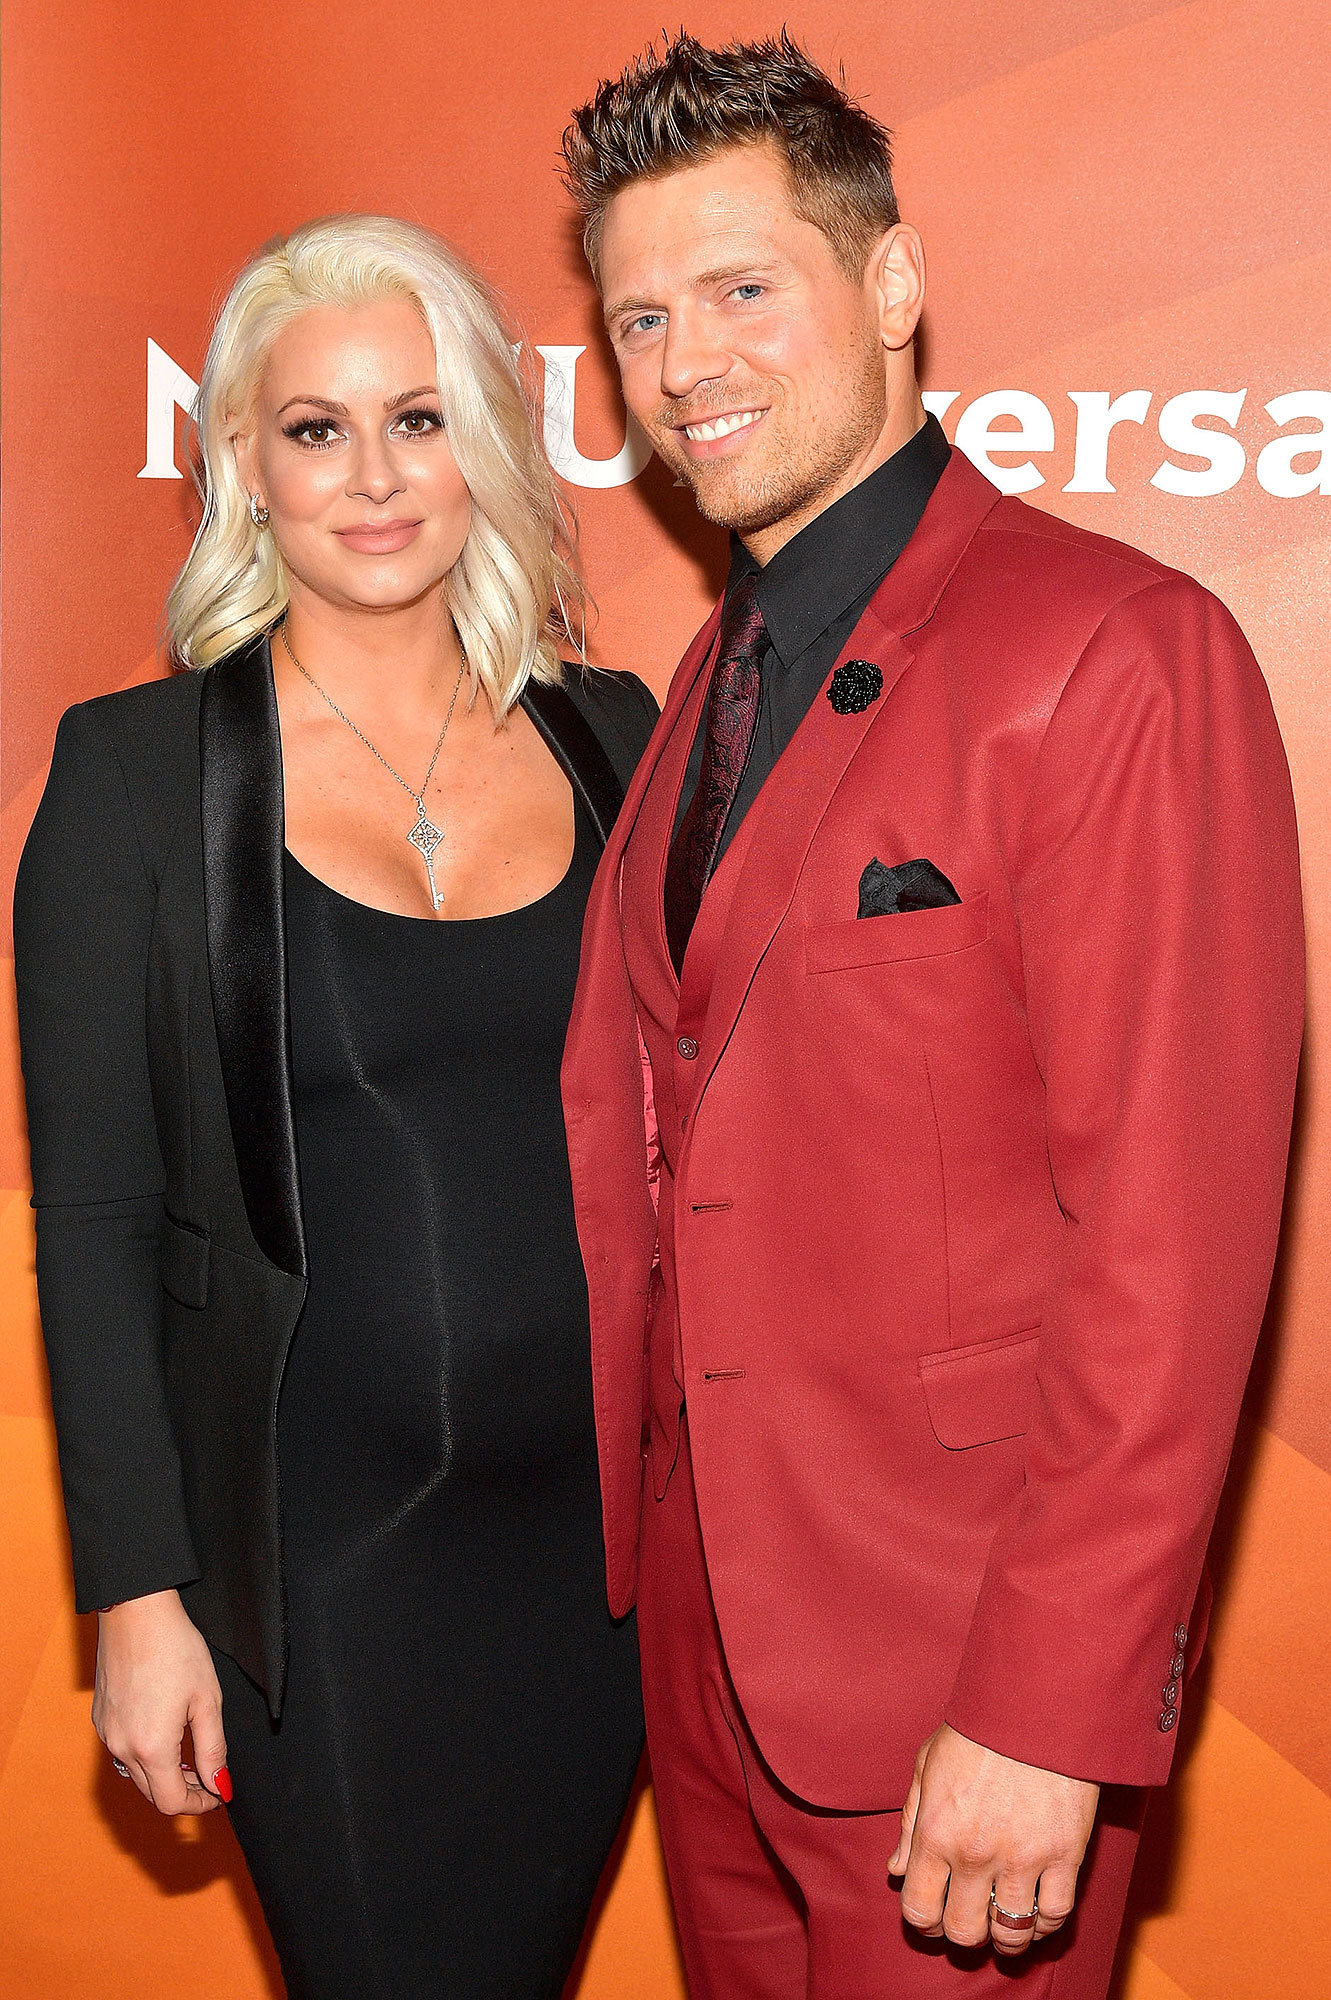 the-miz-maryse-2